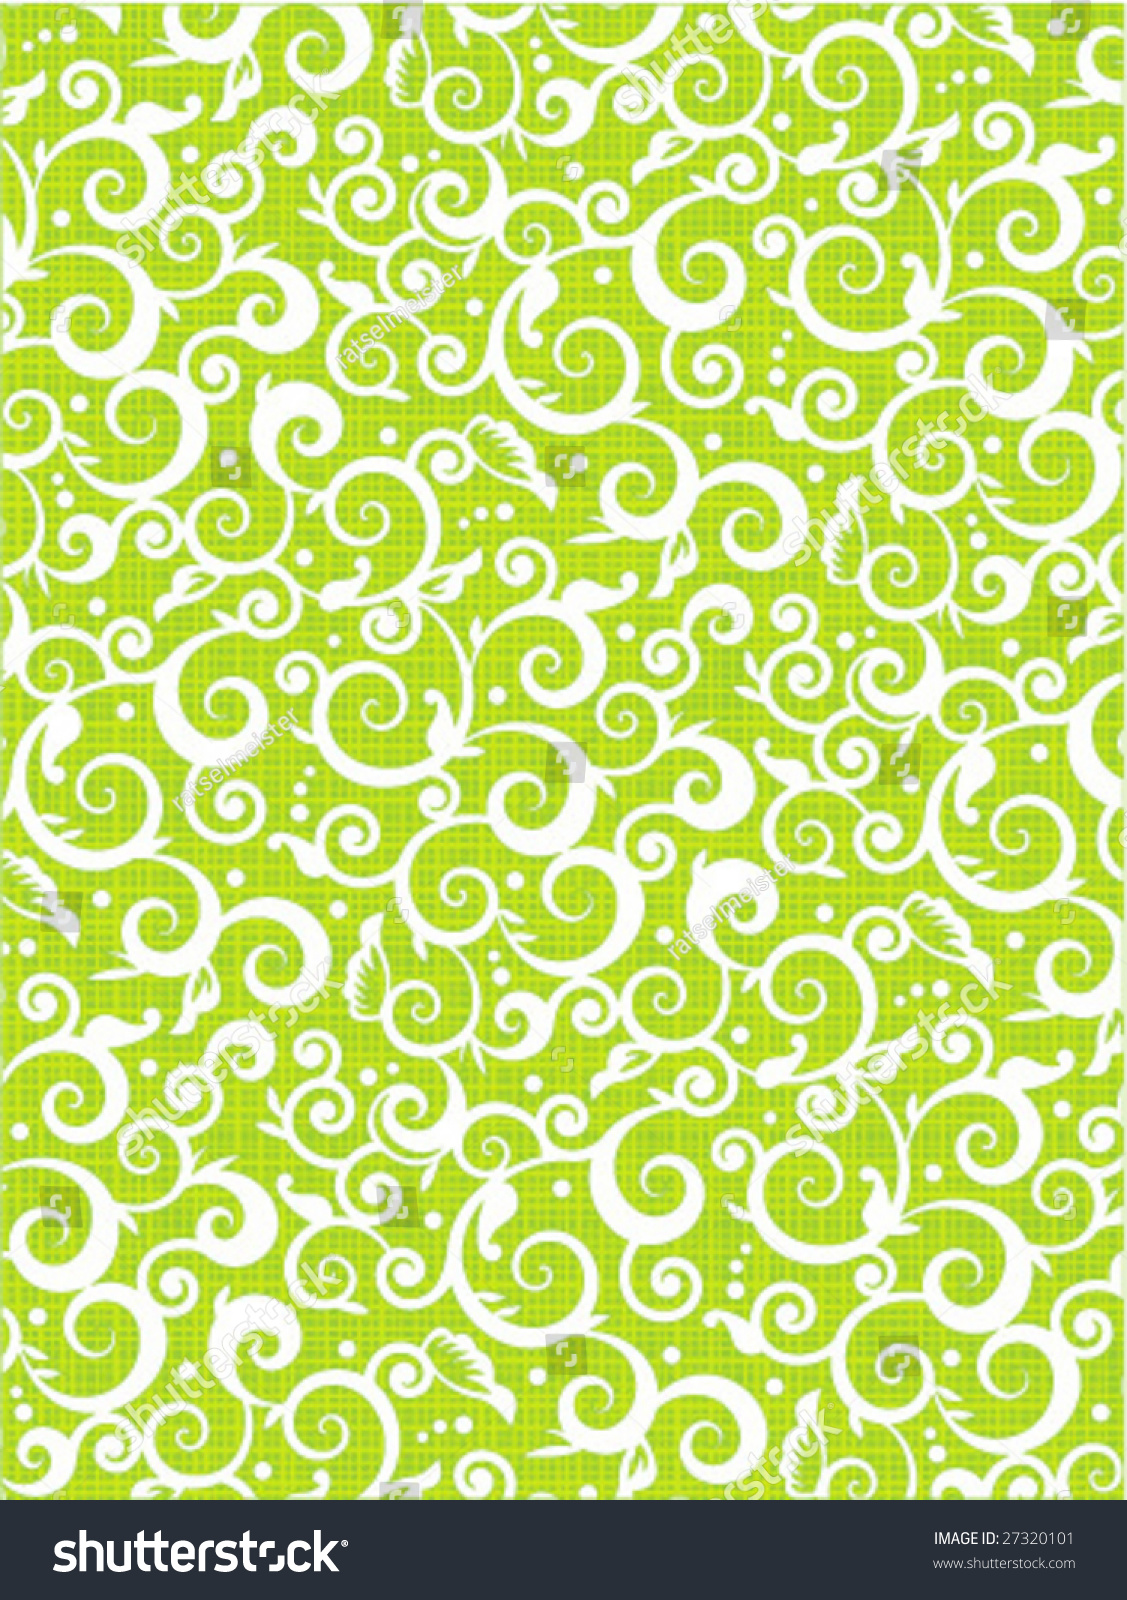 Green and white floral pattern - photo#27